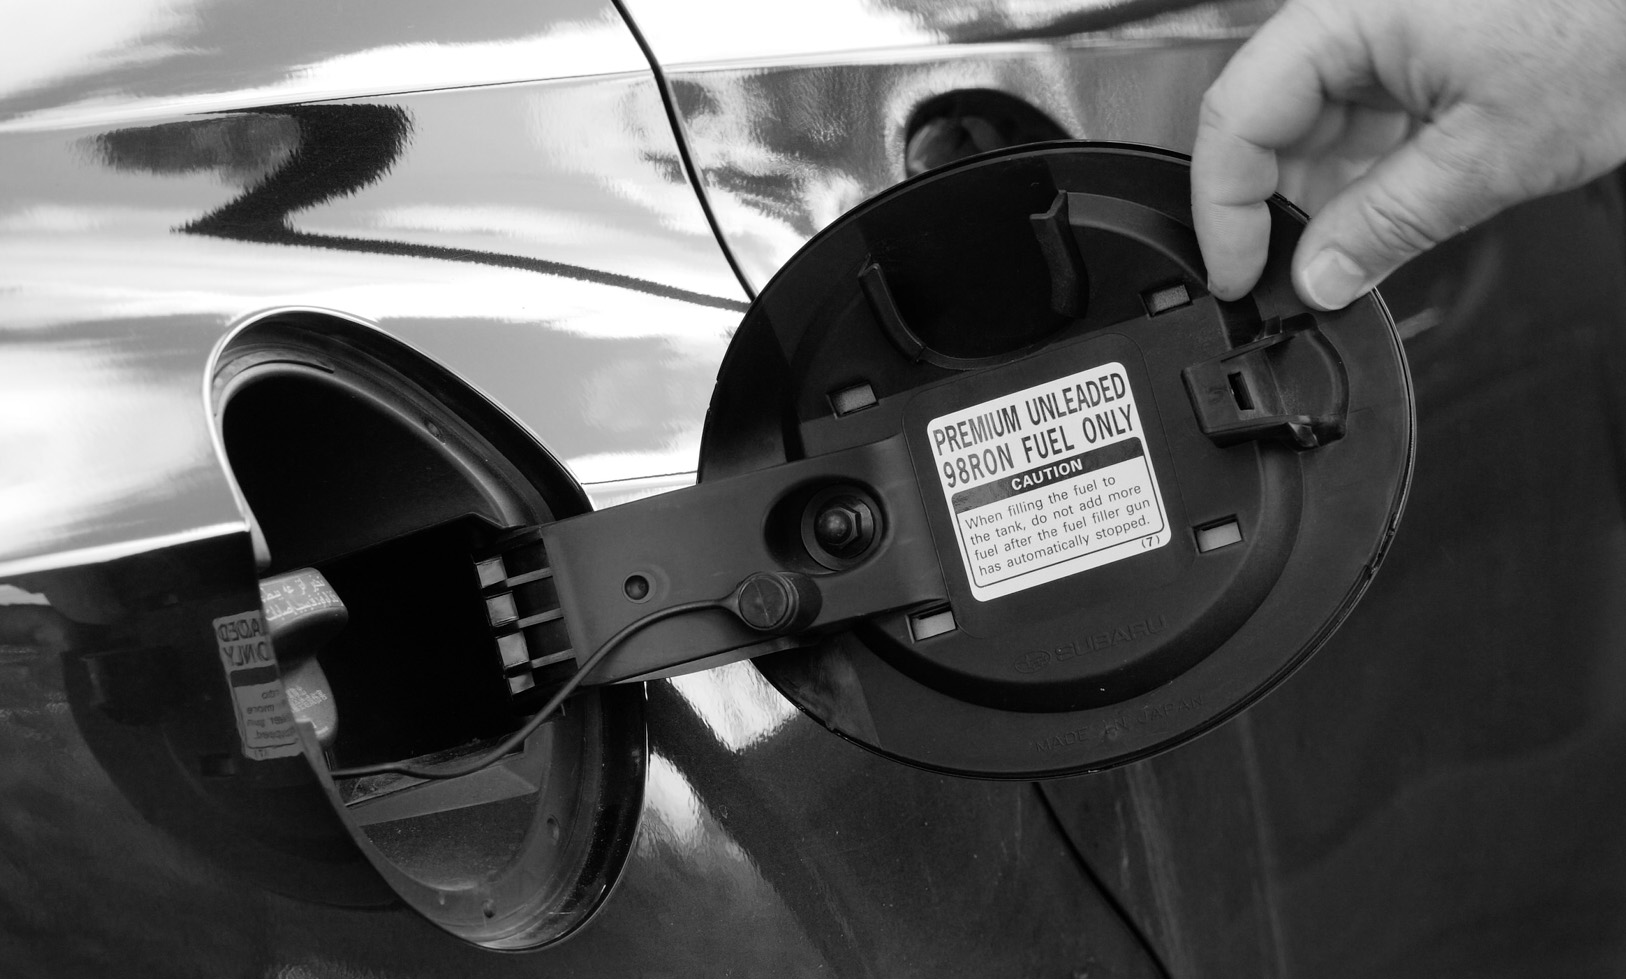 If you see this kind of message: DO NOT use a lower octane fuel. It can damage your engine.